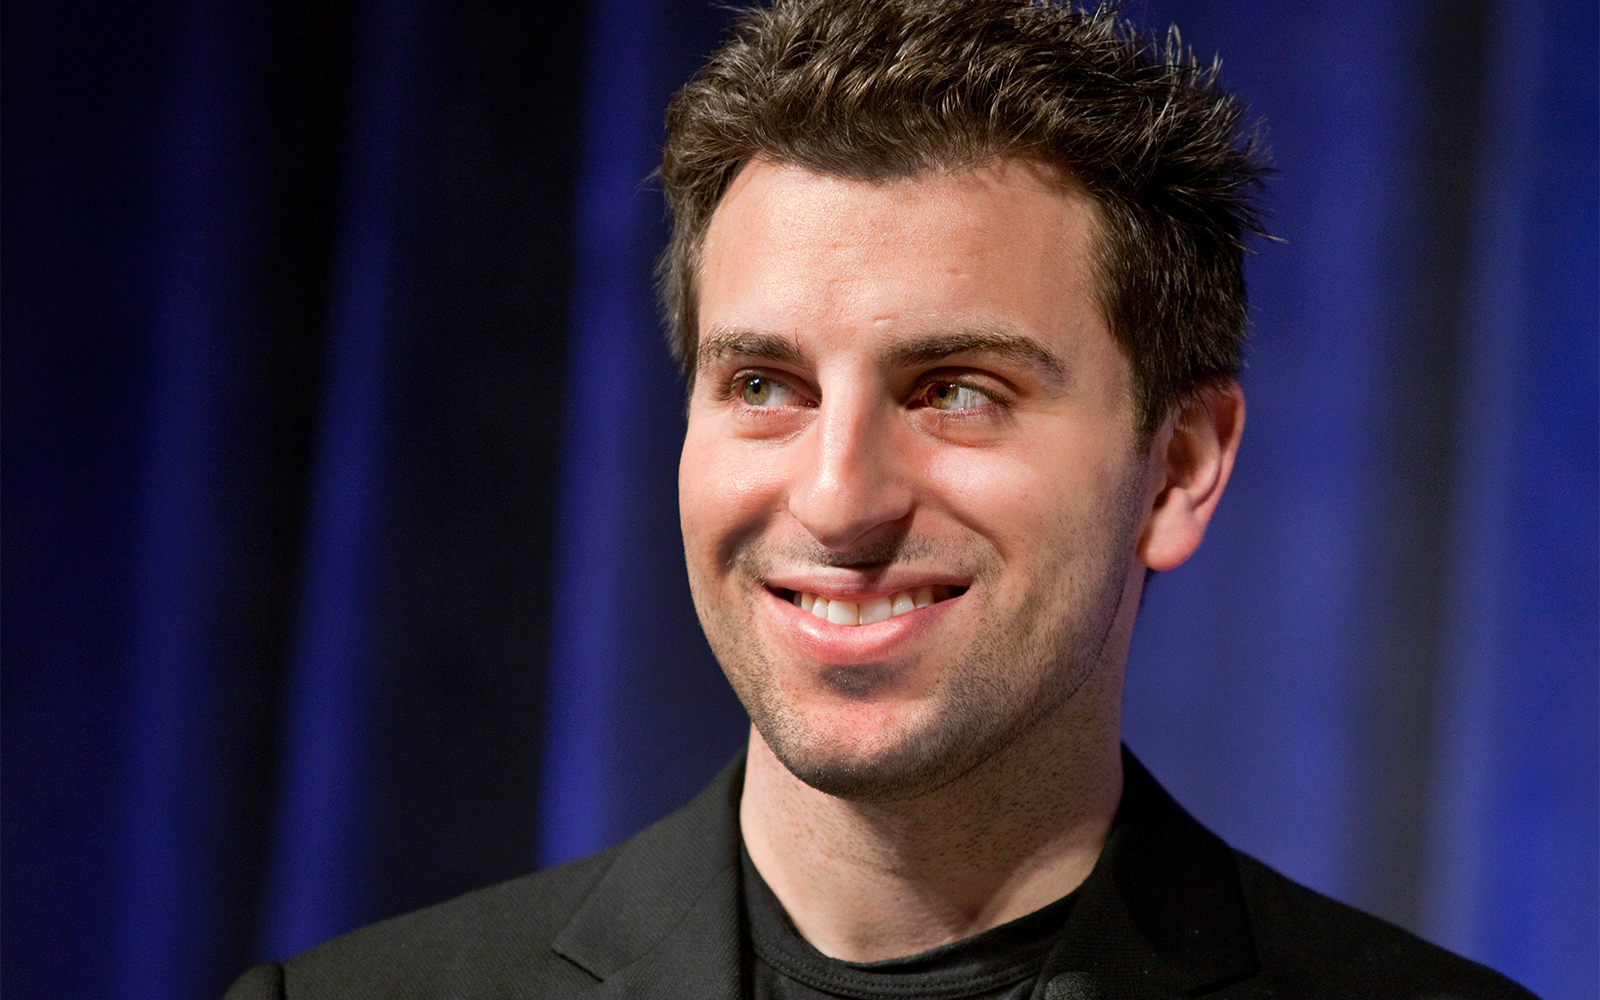 9 Fun Facts About Airbnb CEO Brian Chesky